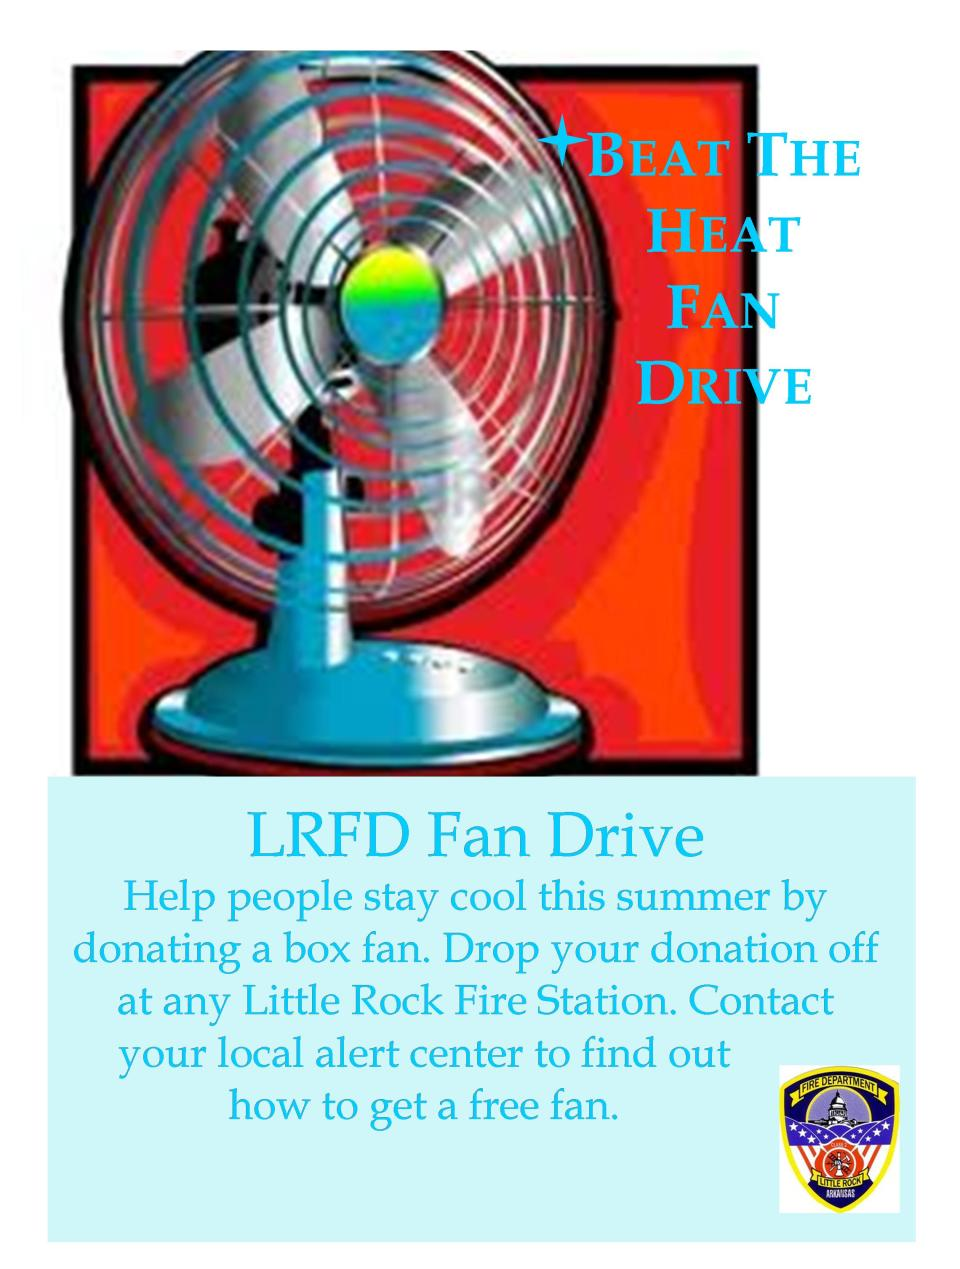 Beat the Heat Fan Drive Flyer